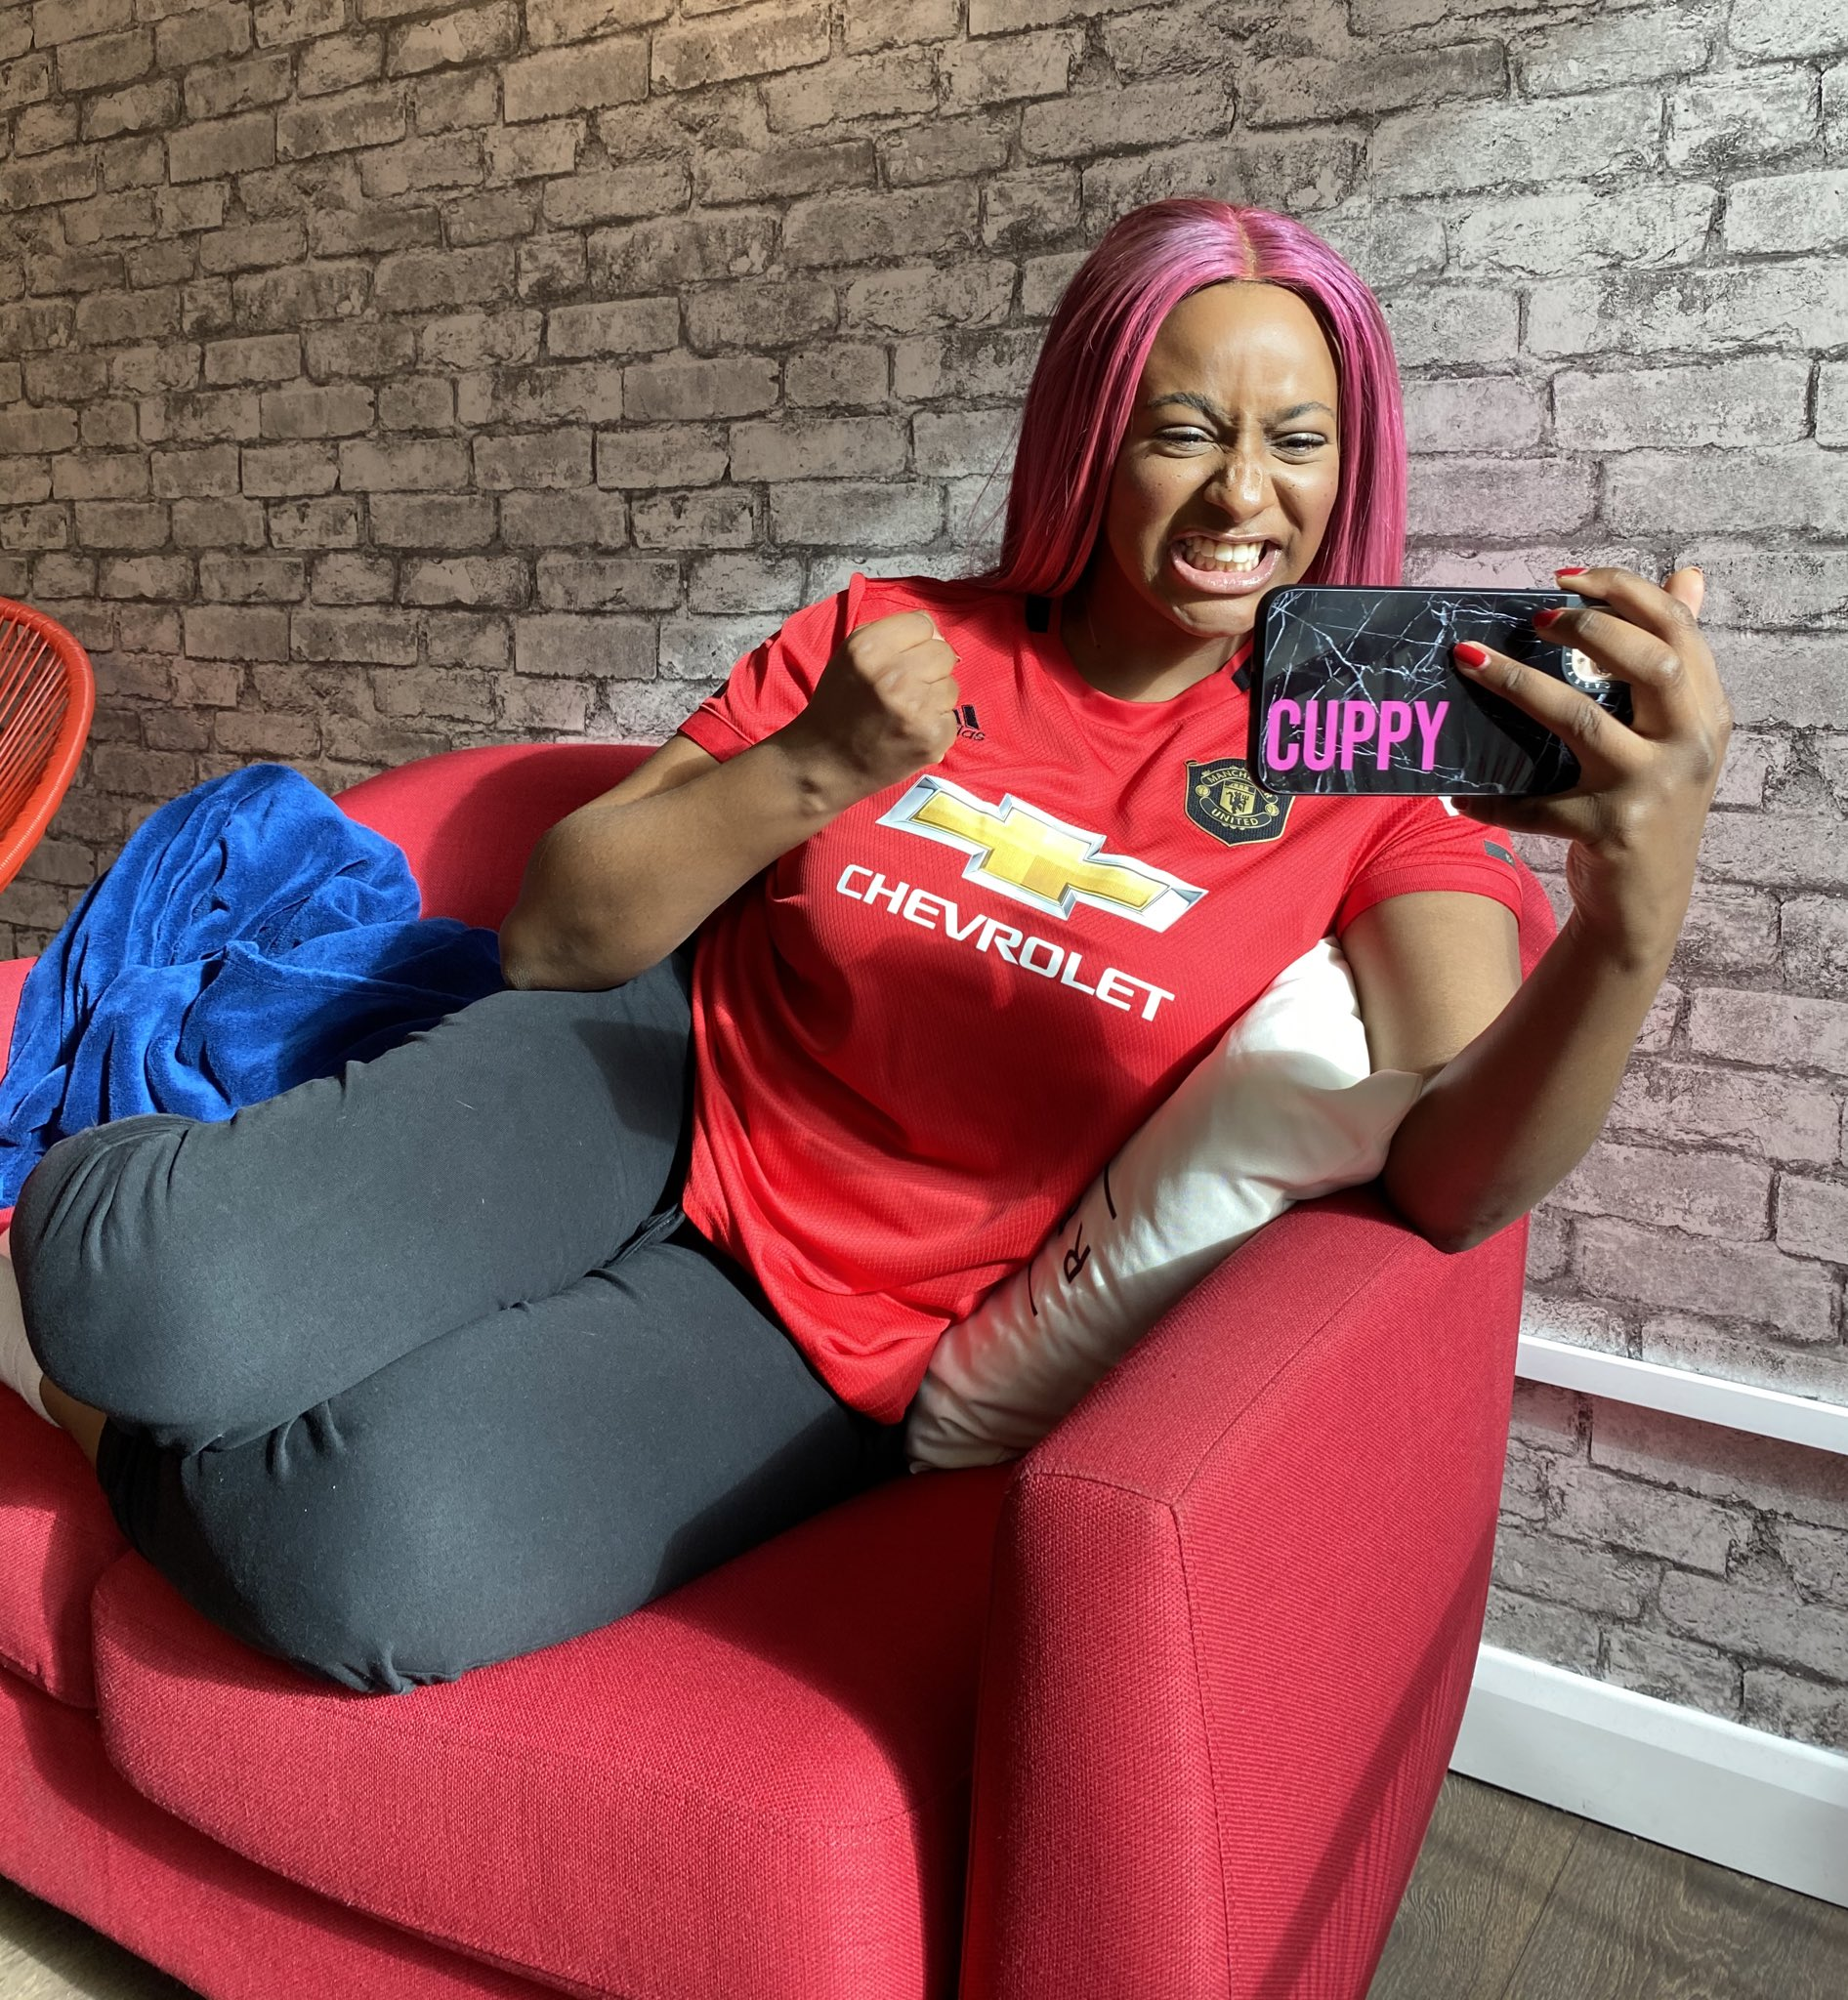 DJ Cuppy Reveals The Best Decision She Made This Year